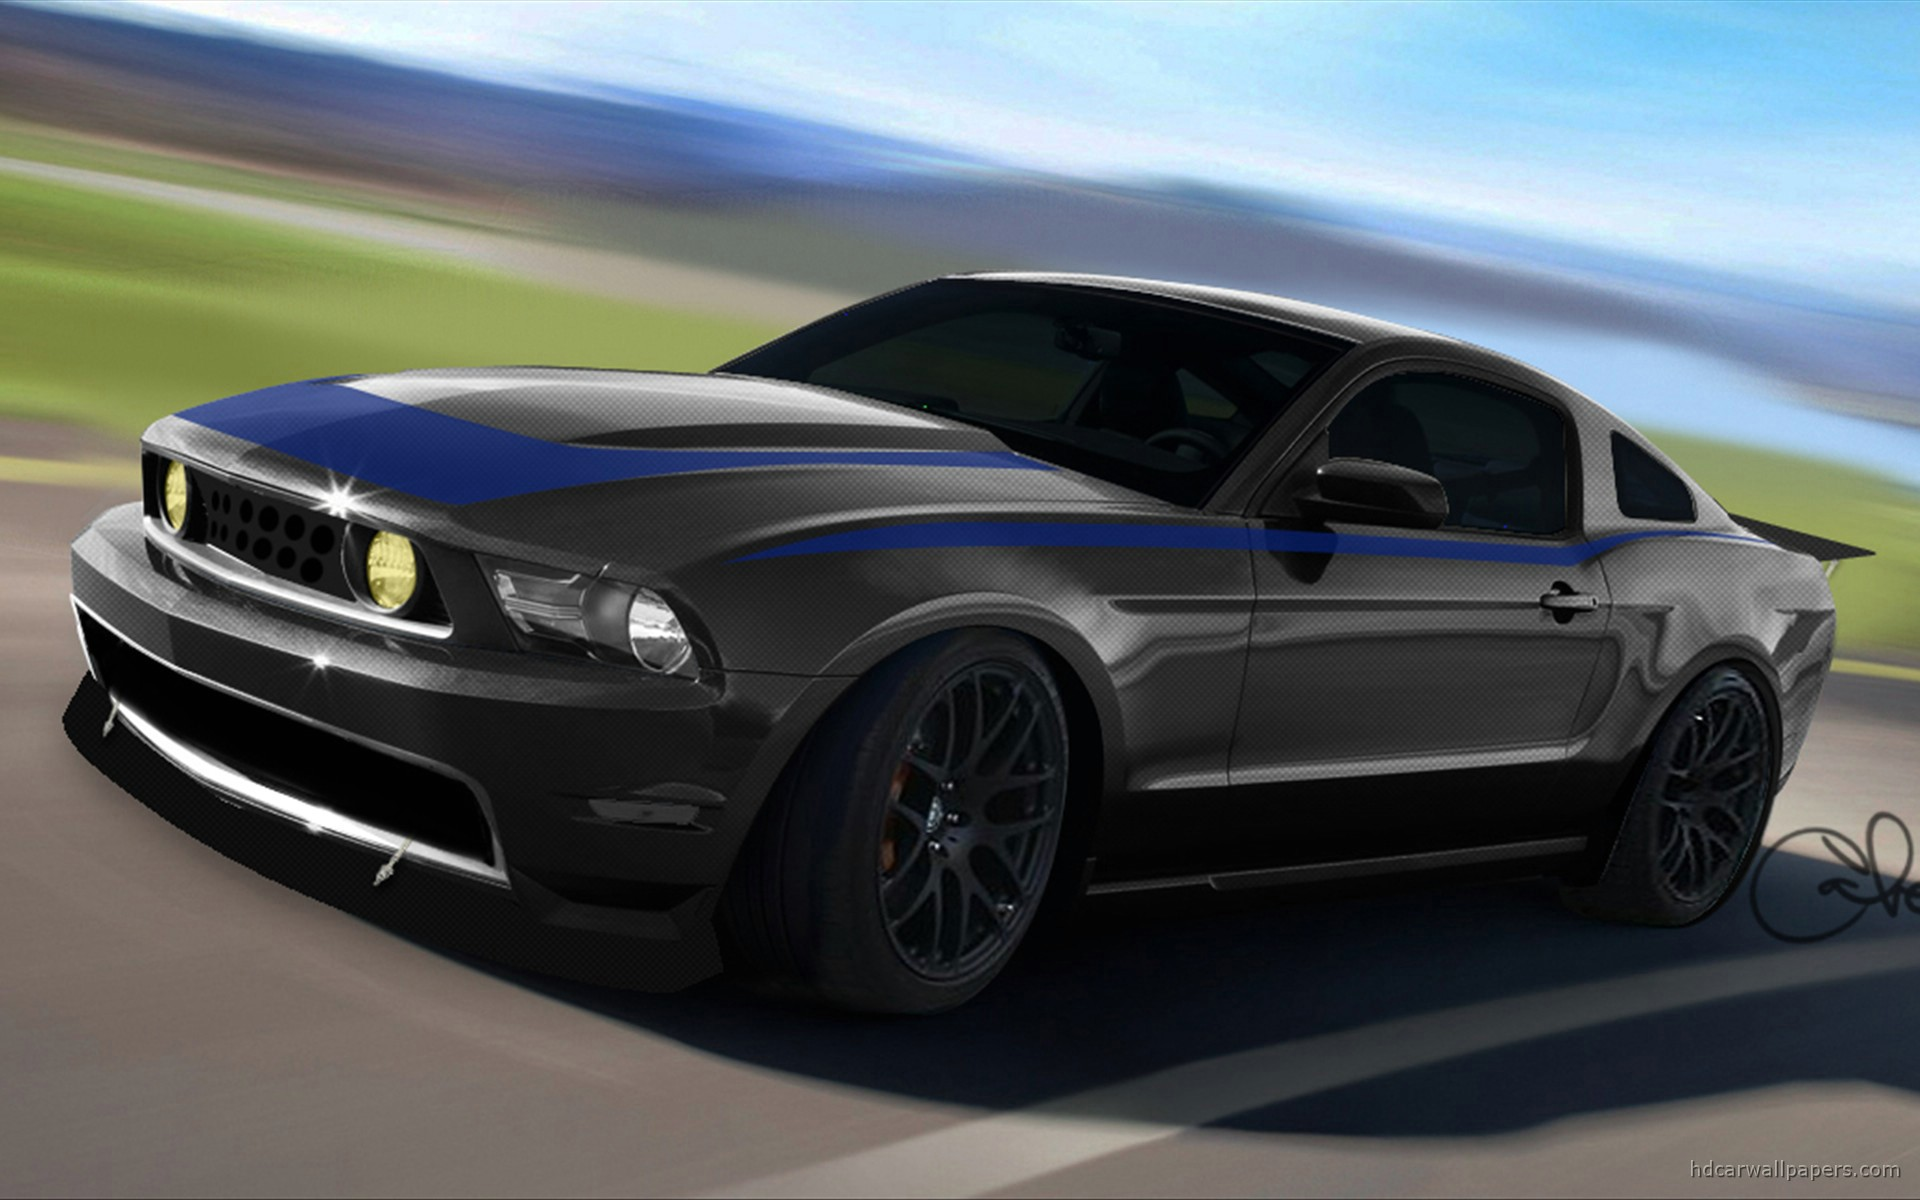 Mustang Black Wallpaper Hd 2010 ford mustang at sema 2009 4 wallpapers 1920x1200